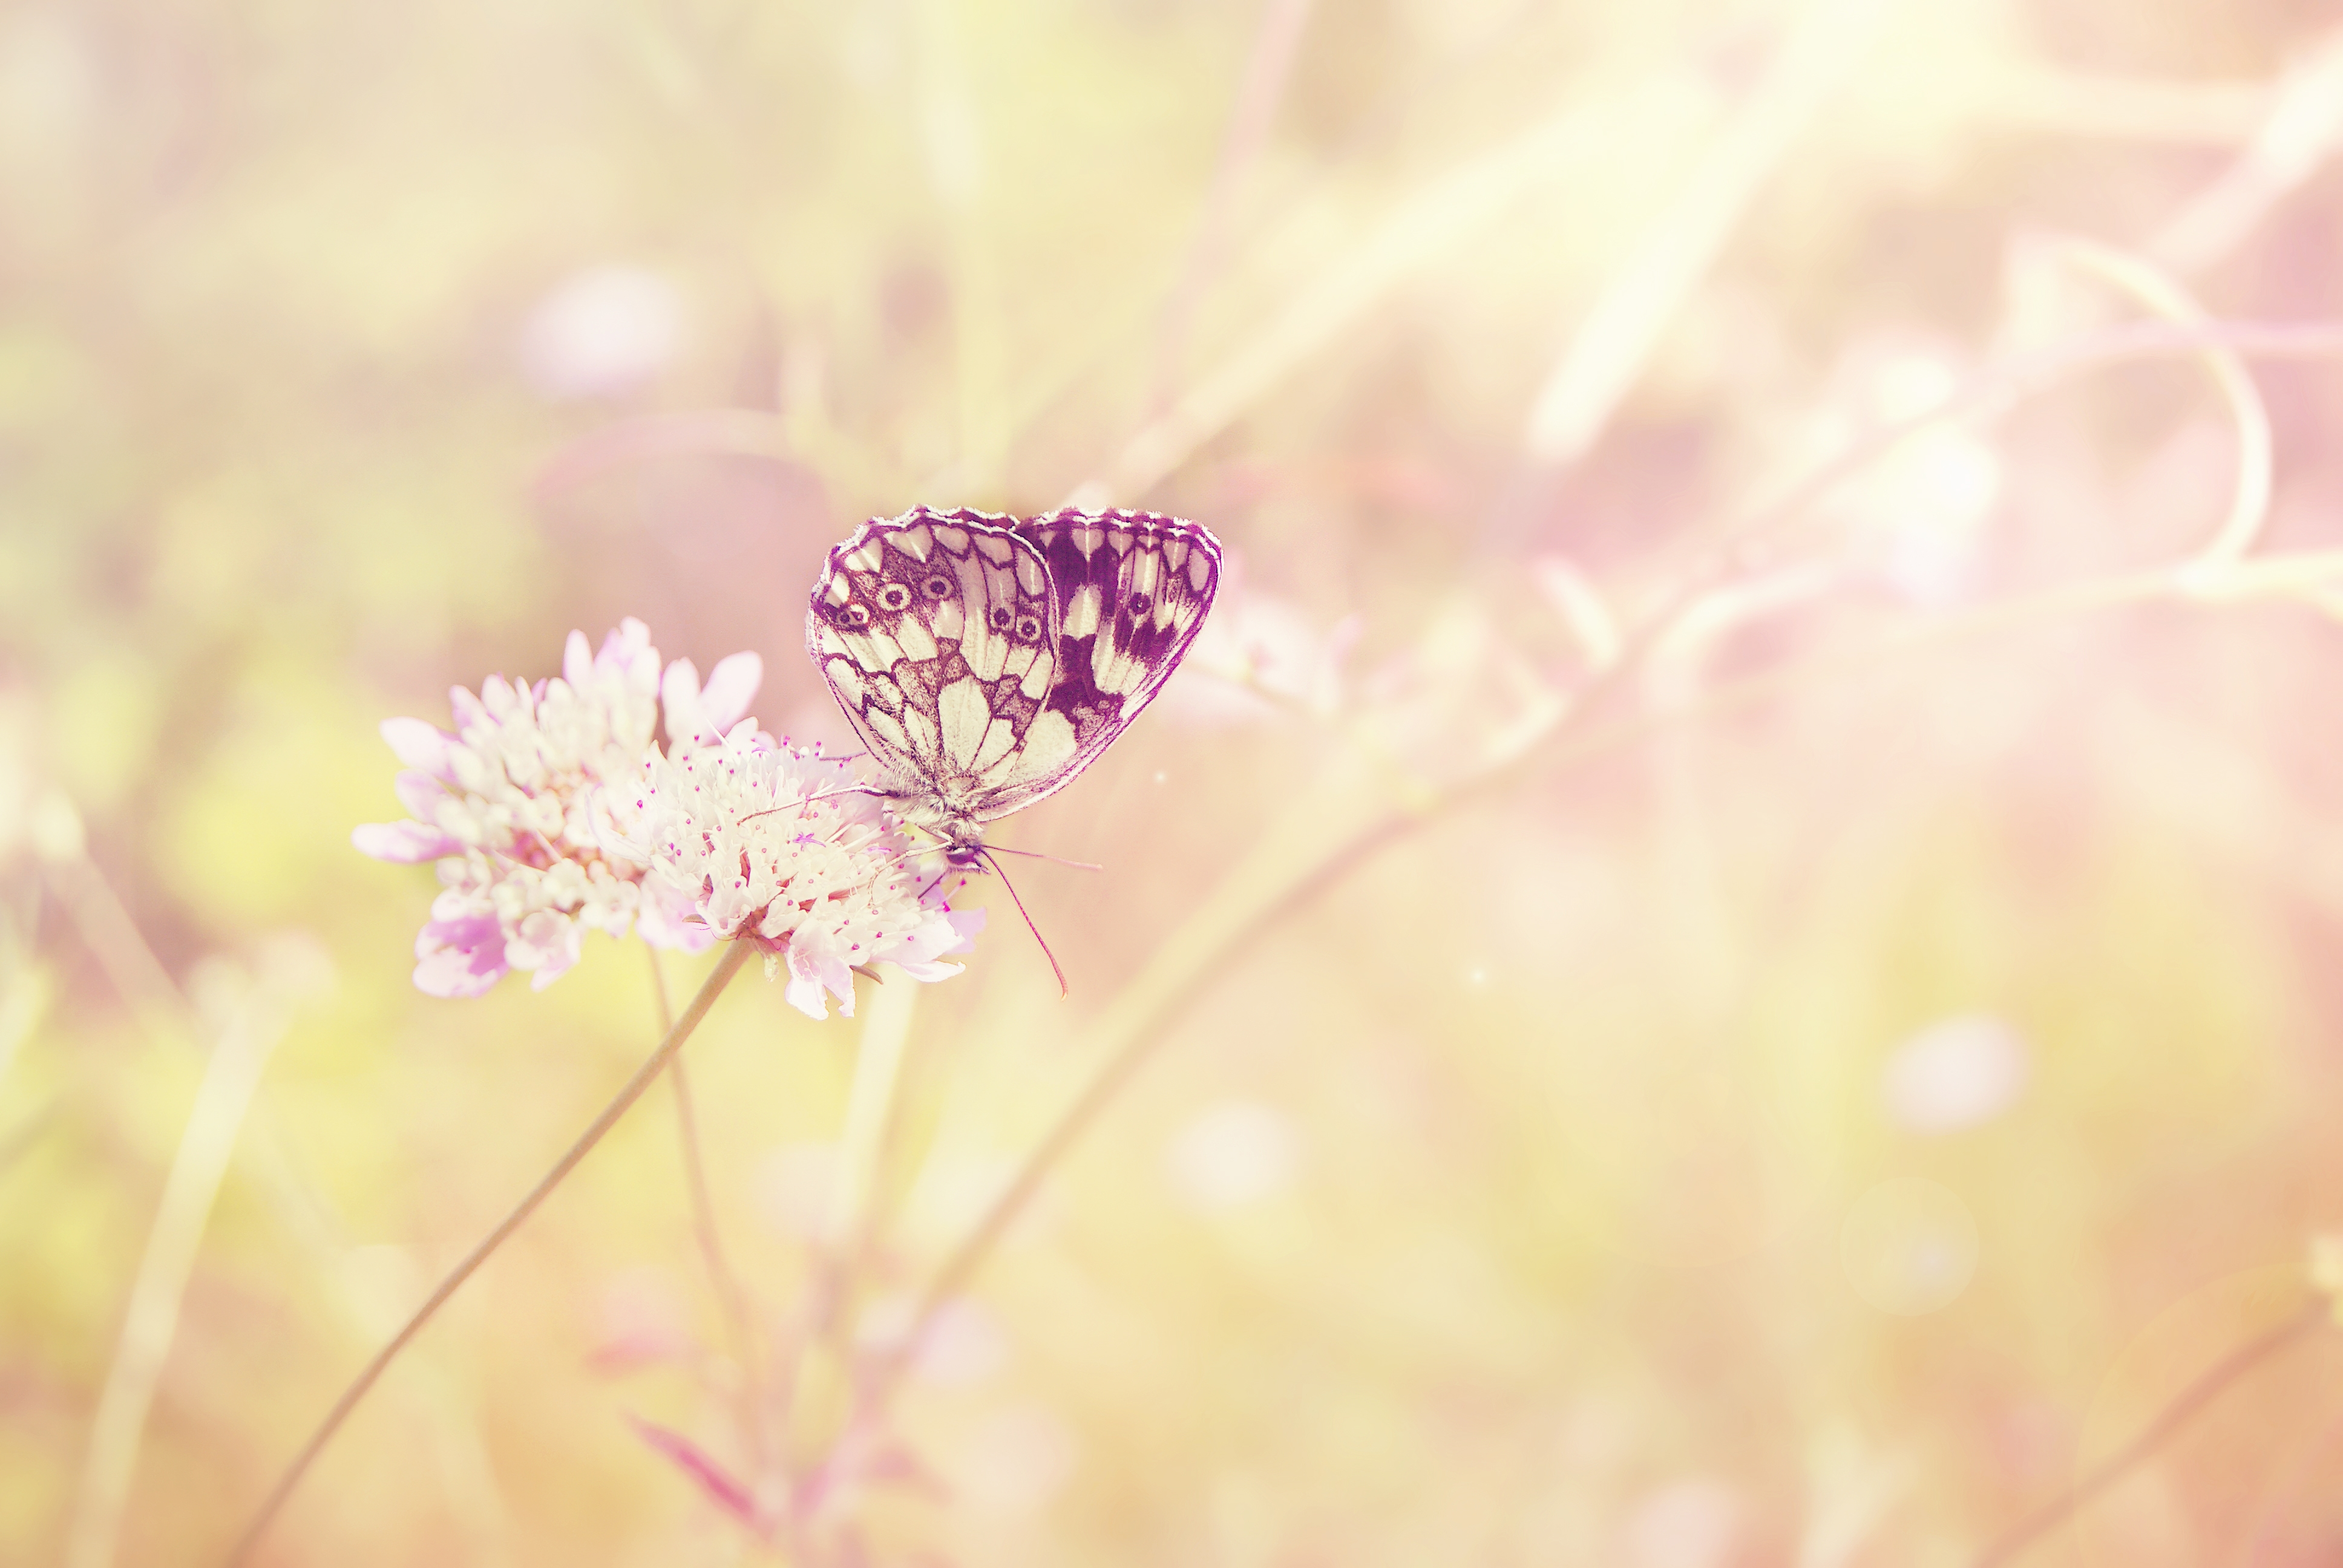 87094 download wallpaper Macro, Butterfly, Summer, Insect, Field, Plant, Shine, Light, Color, Flower, Sun screensavers and pictures for free